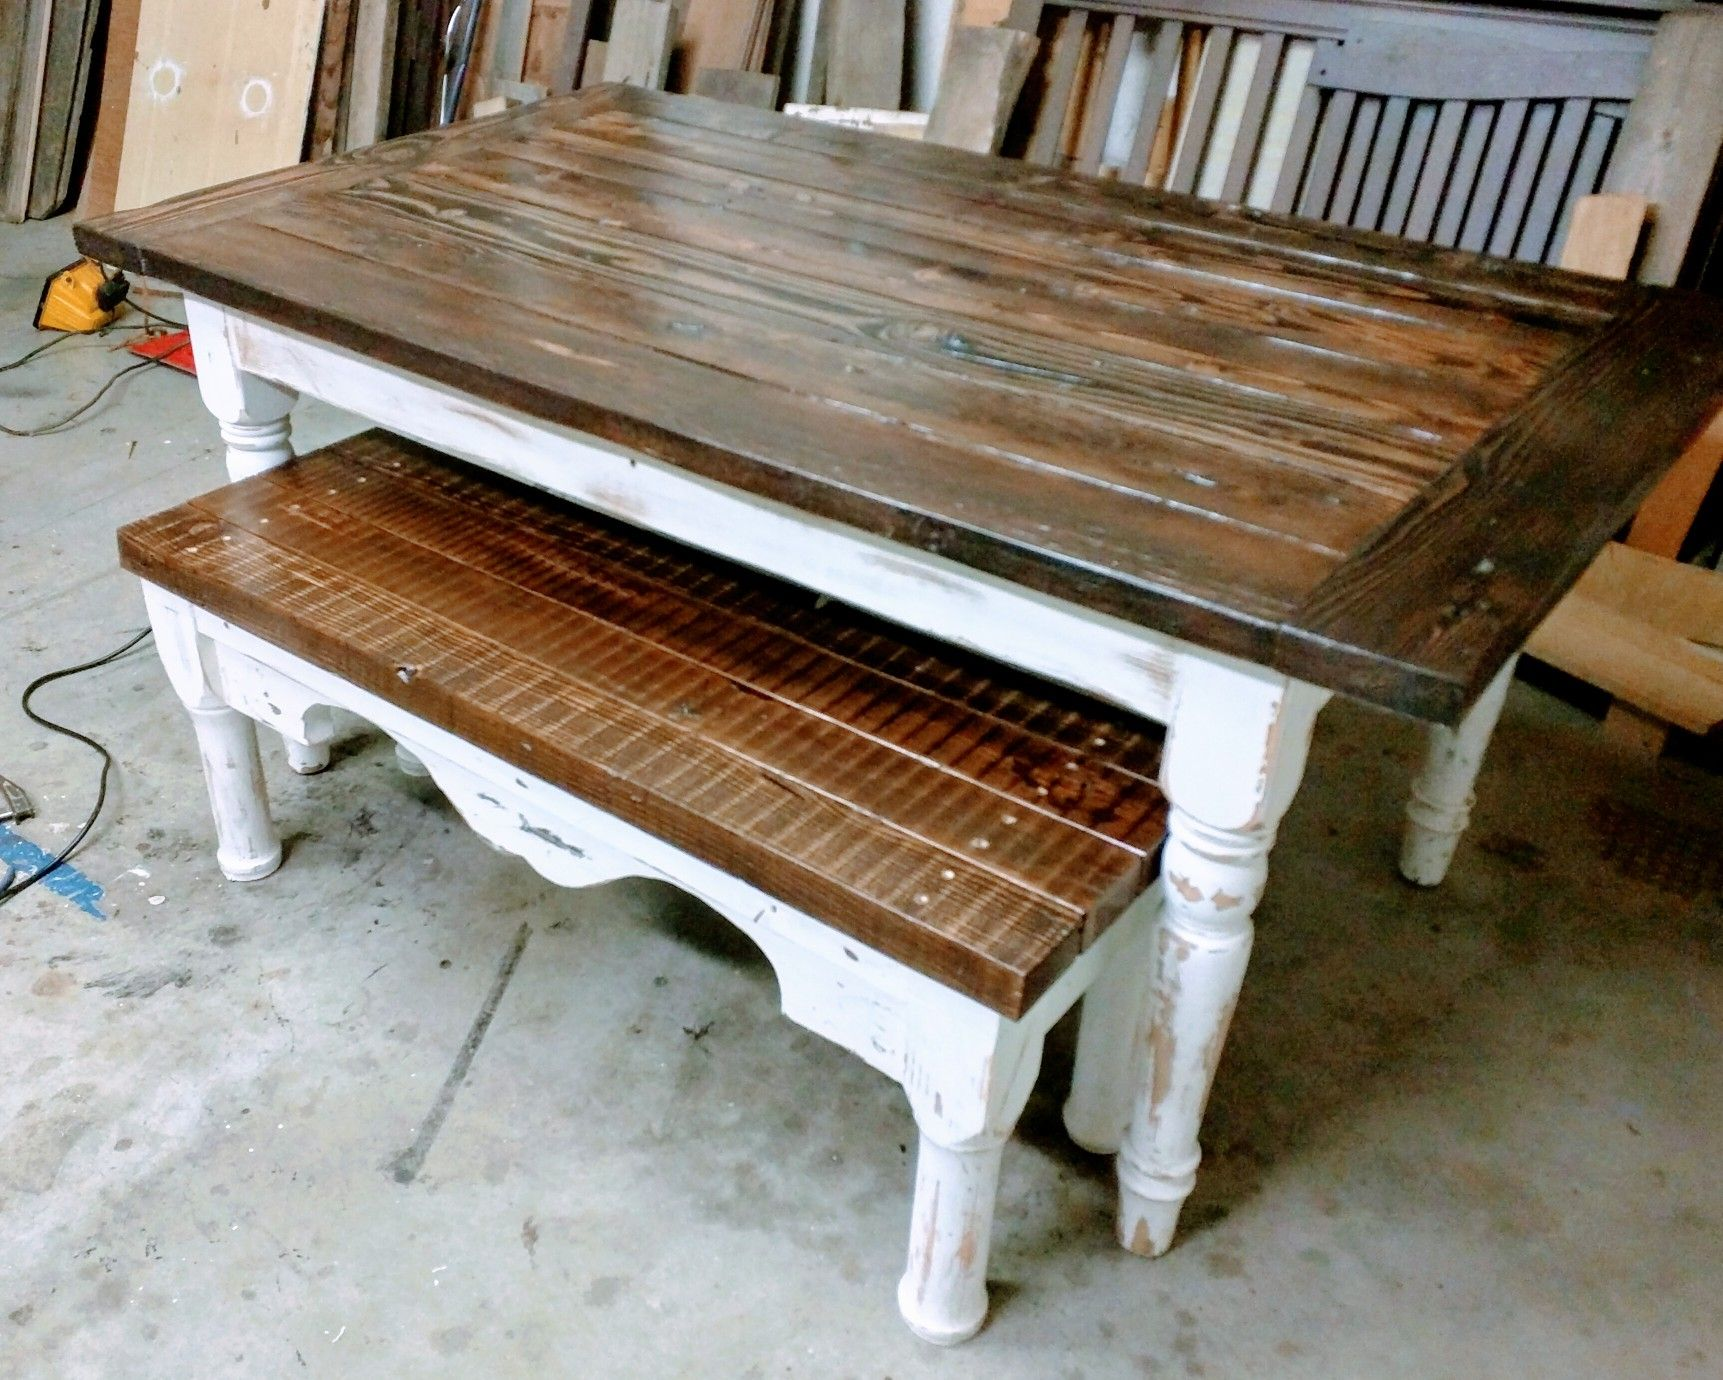 Pin by scott turner on my projects | Dining table, Rustic ...